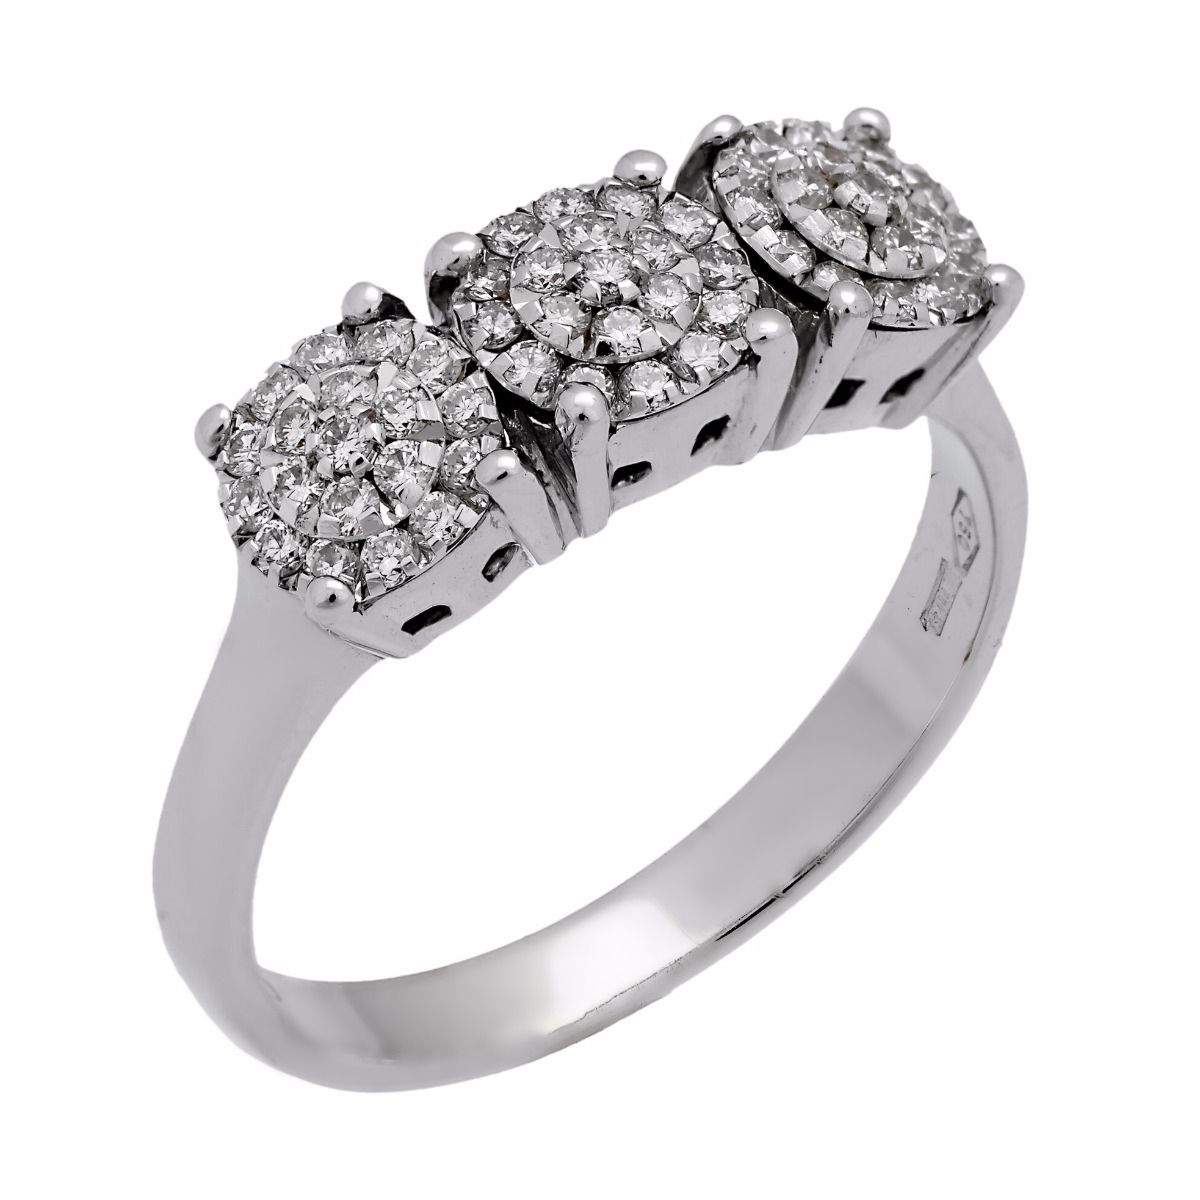 Chimento Past Present Future Round Diamond Ring - Chimento Jewelry